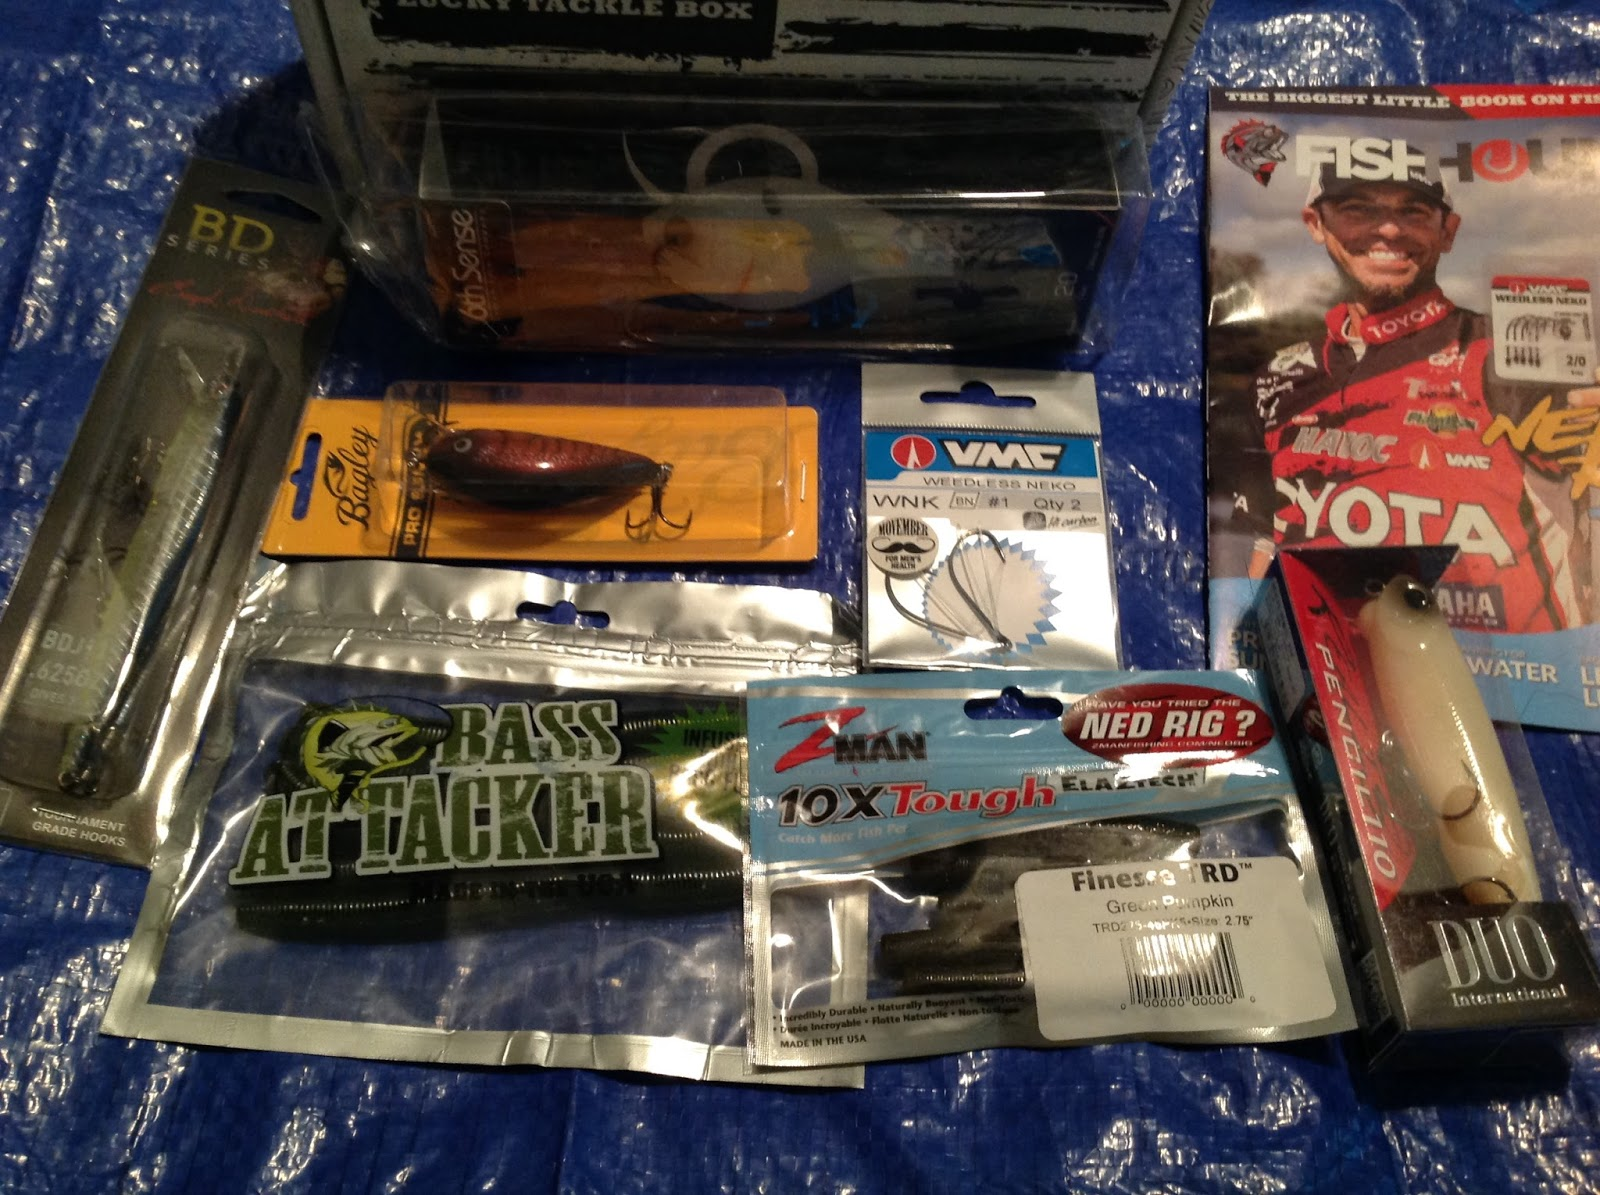 Cassandra m 39 s place lucky tackle box review luckytacklebox for Fishing box subscription